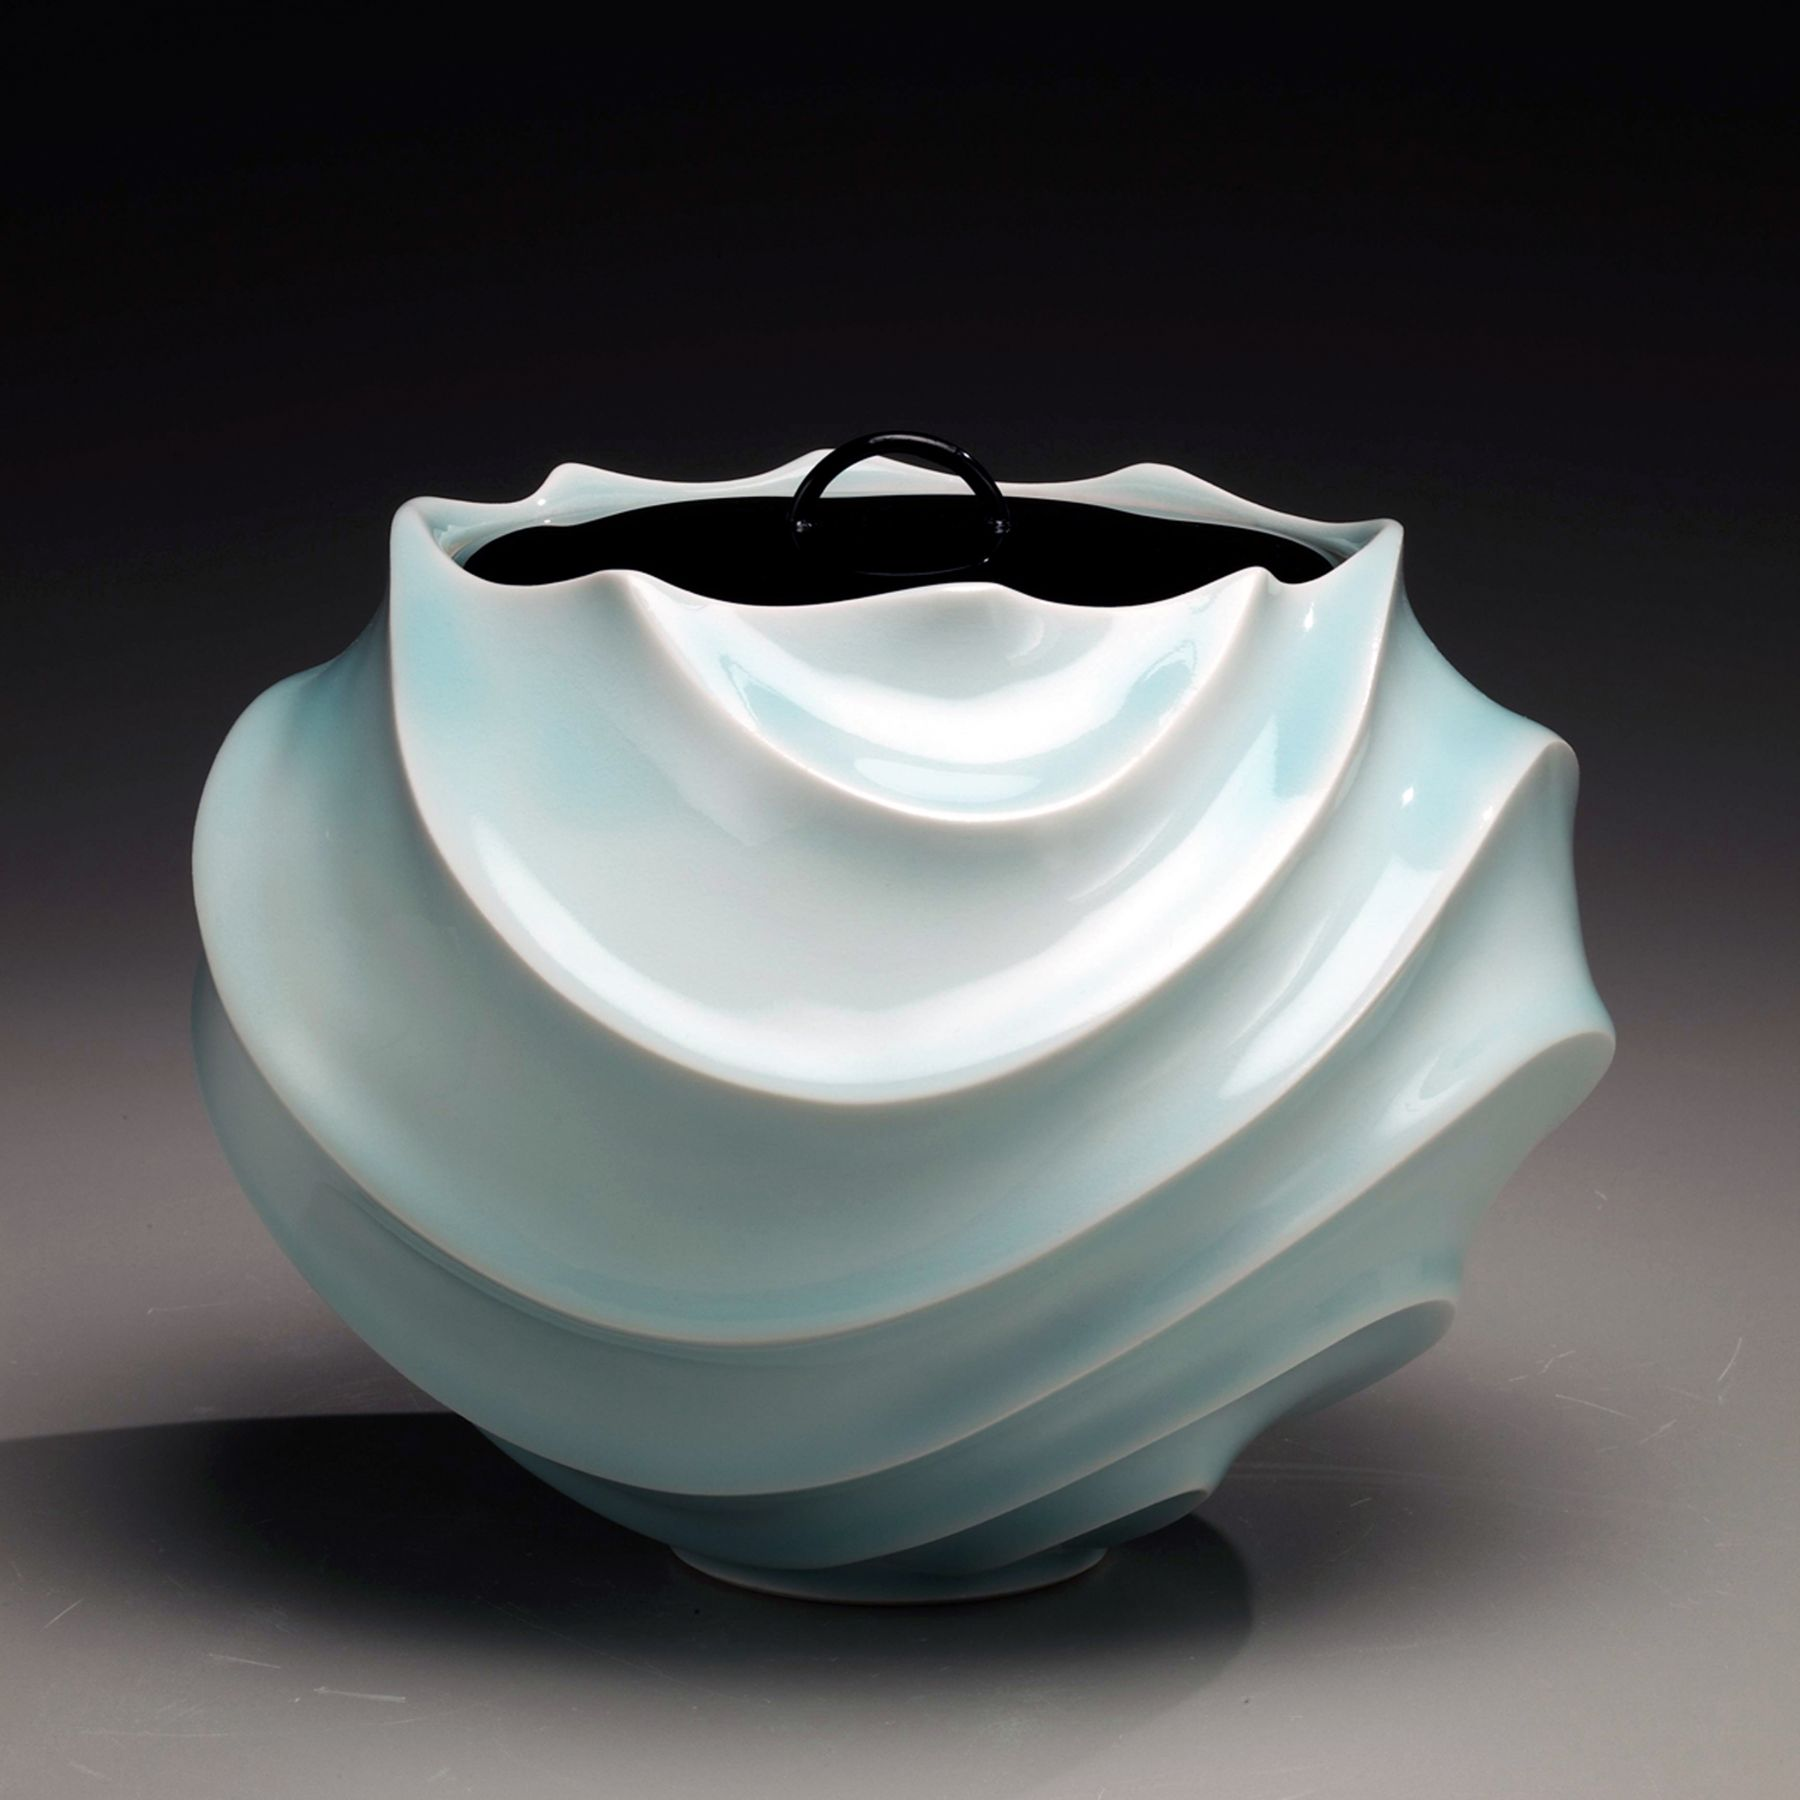 Ono Kotaro, Globular seihakuji celadon-glazed water jar, 2009, Glazed porcelain and lacquer lid, Japanese contemporary ceramics